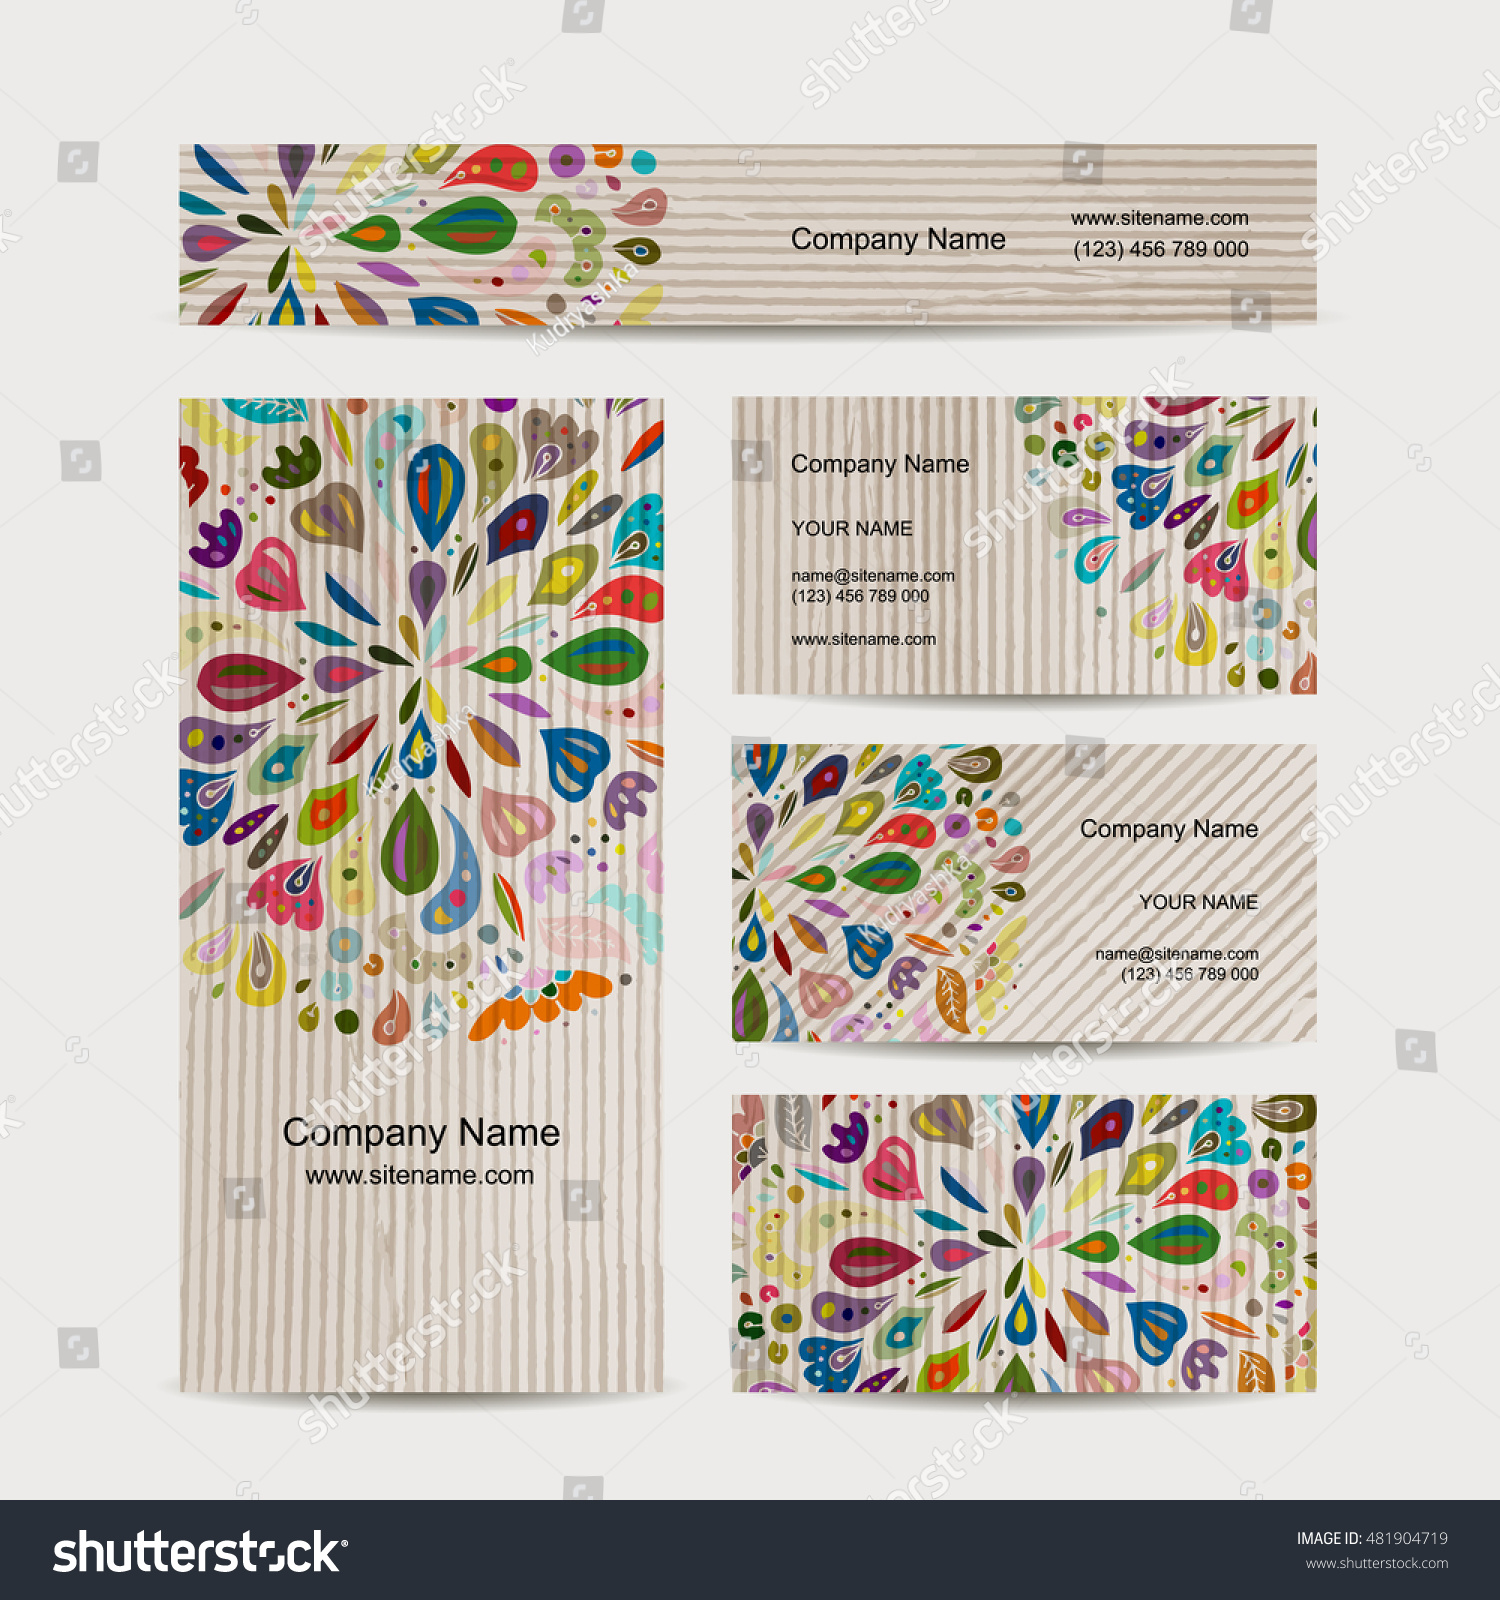 Business Card Collection Abstract Floral Design Stock Vector (2018 ...